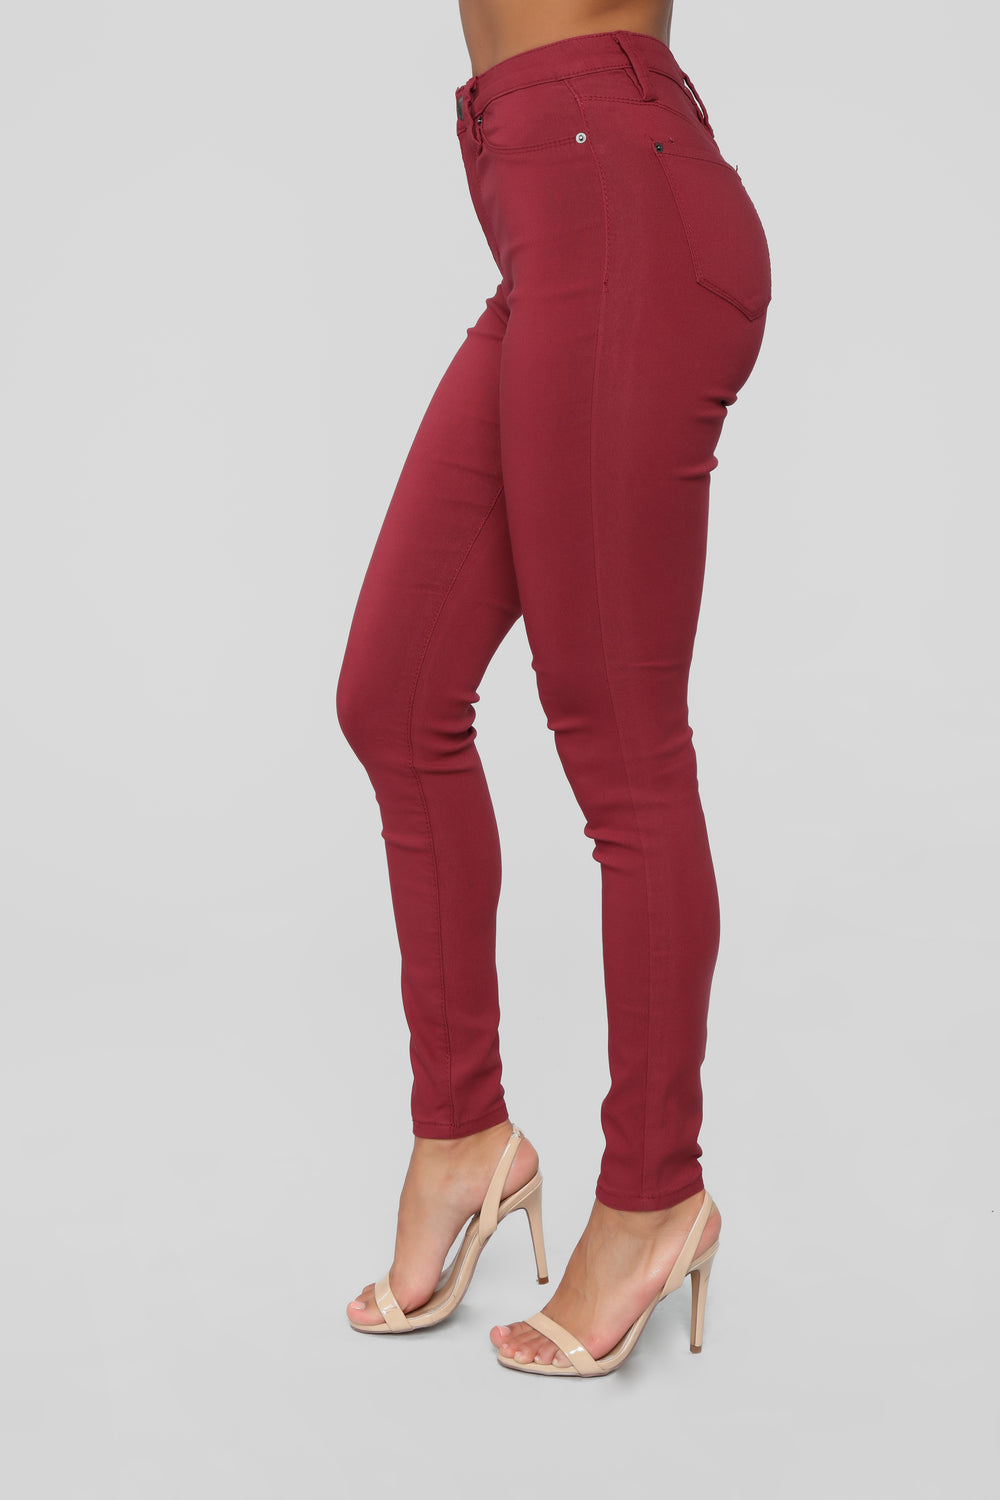 In It To Win It Tummy Control Pants - Red